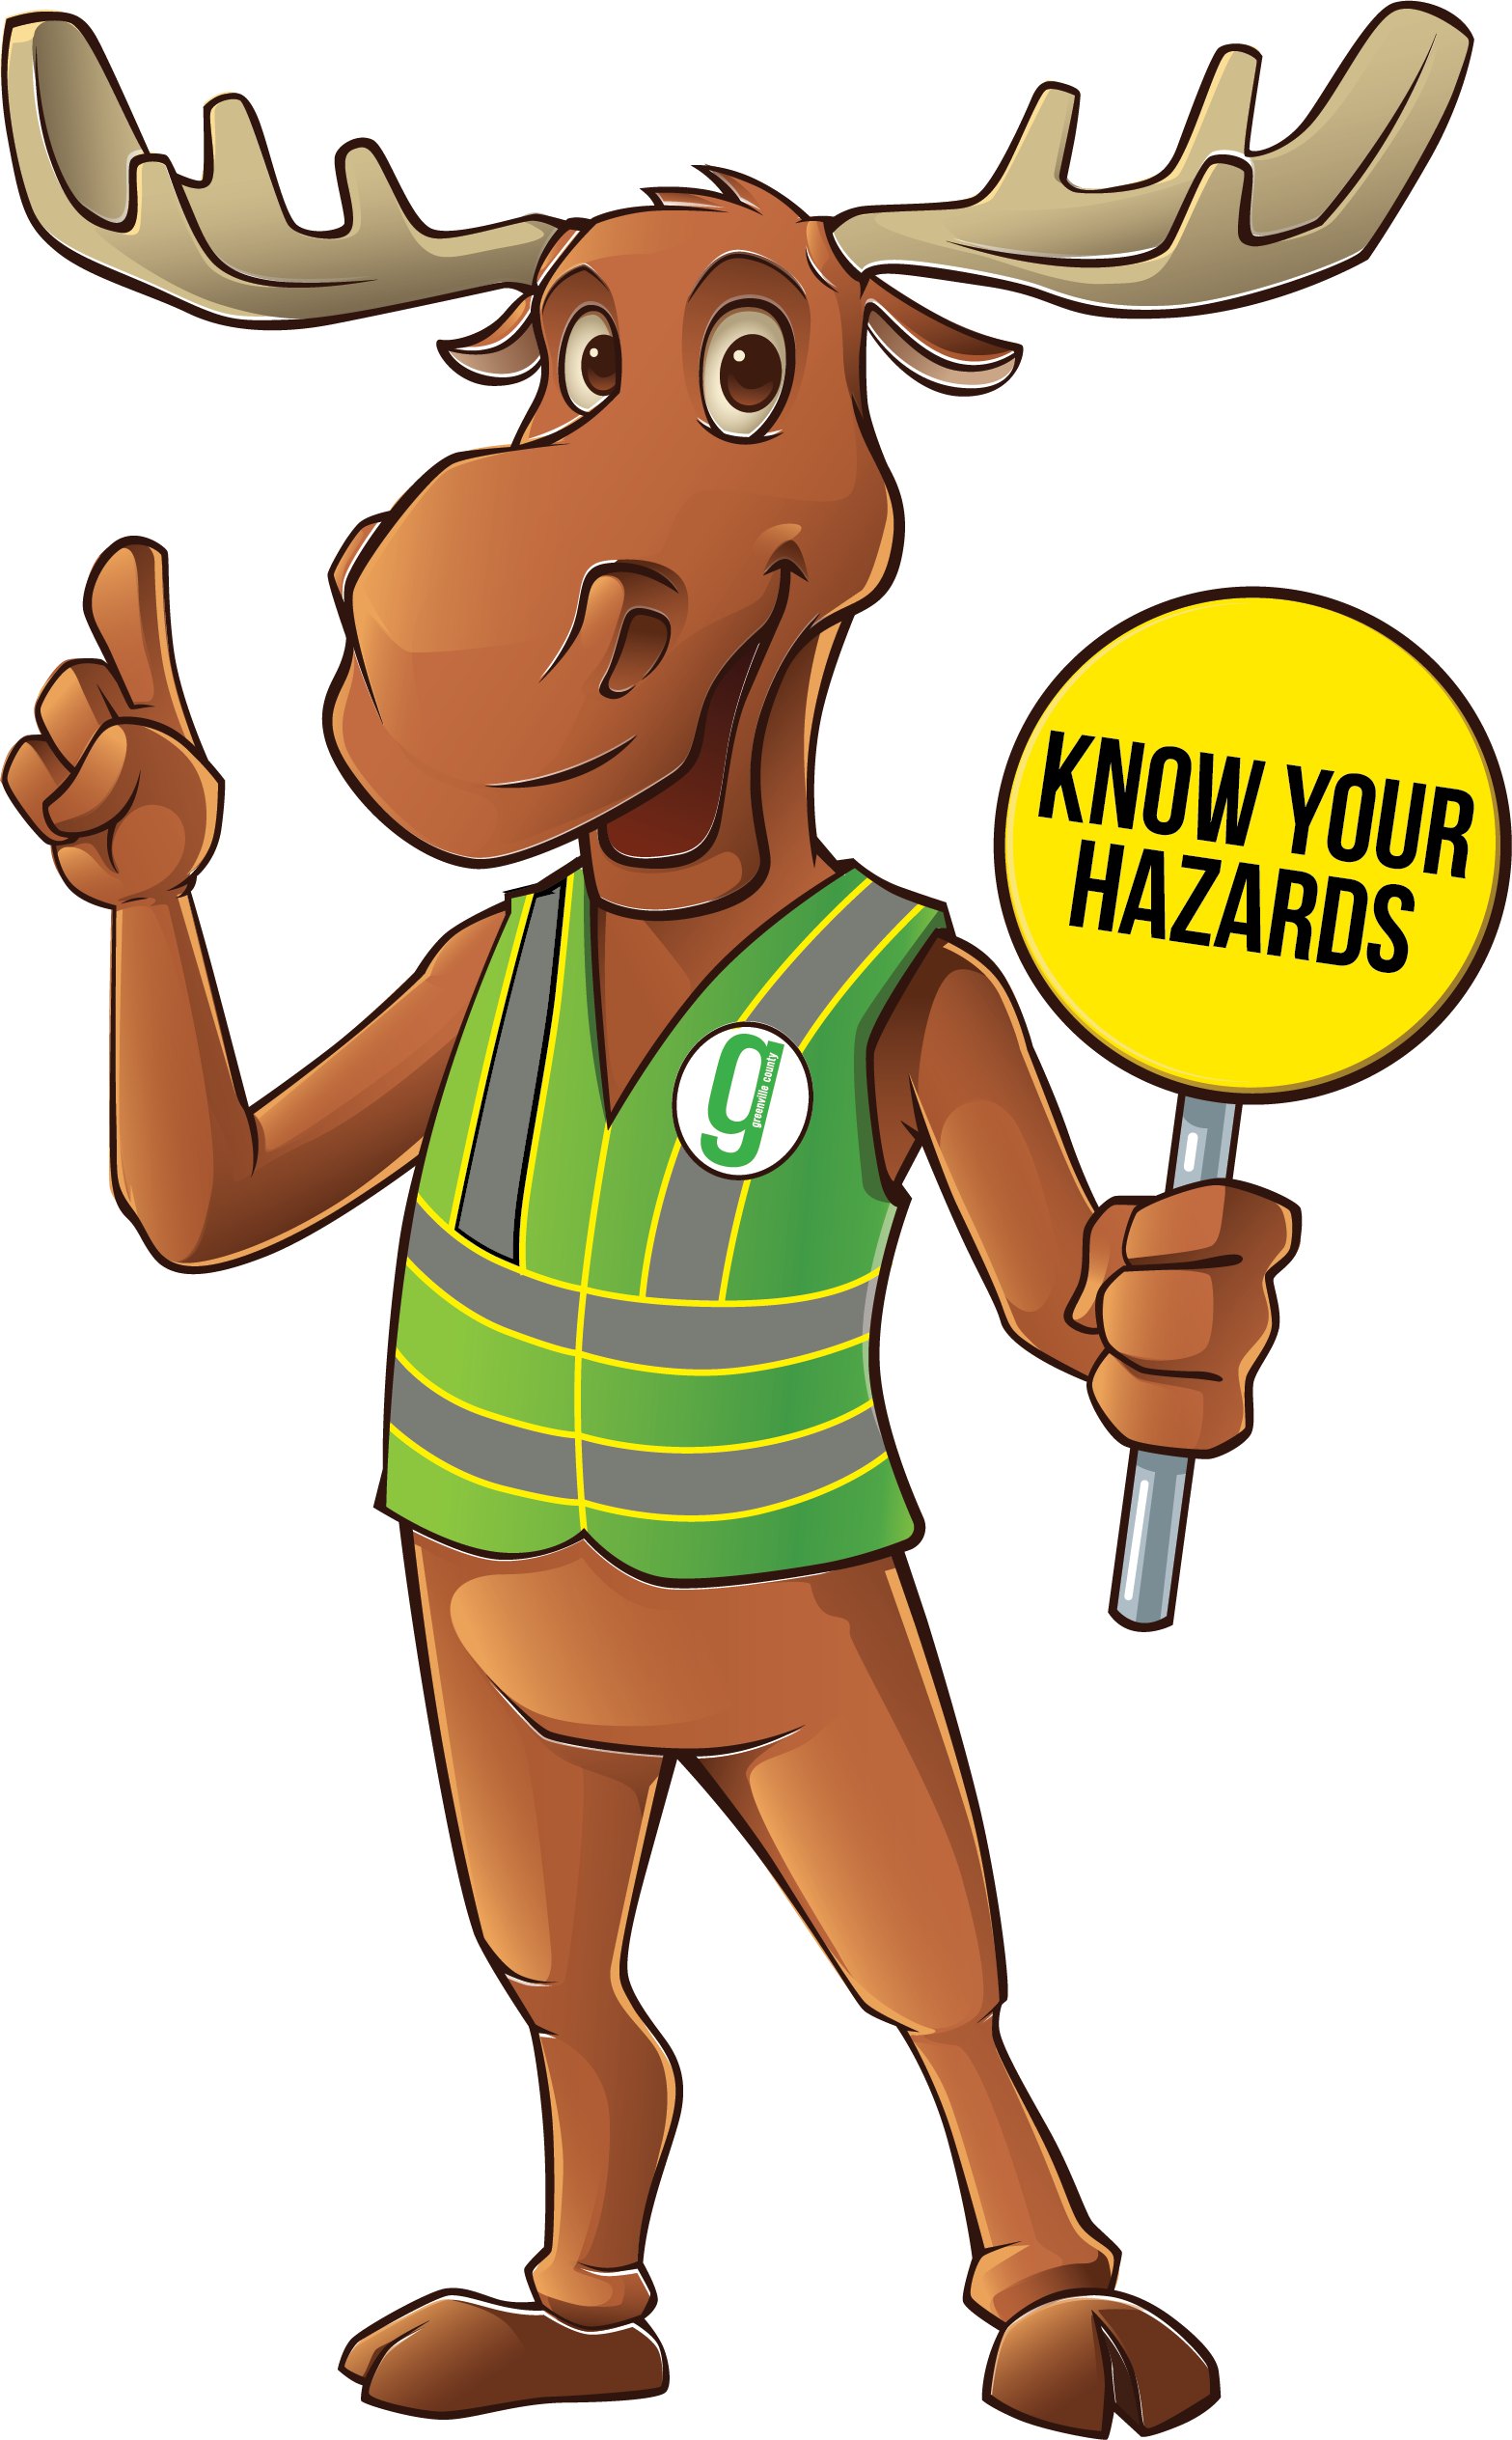 knowyourhazards